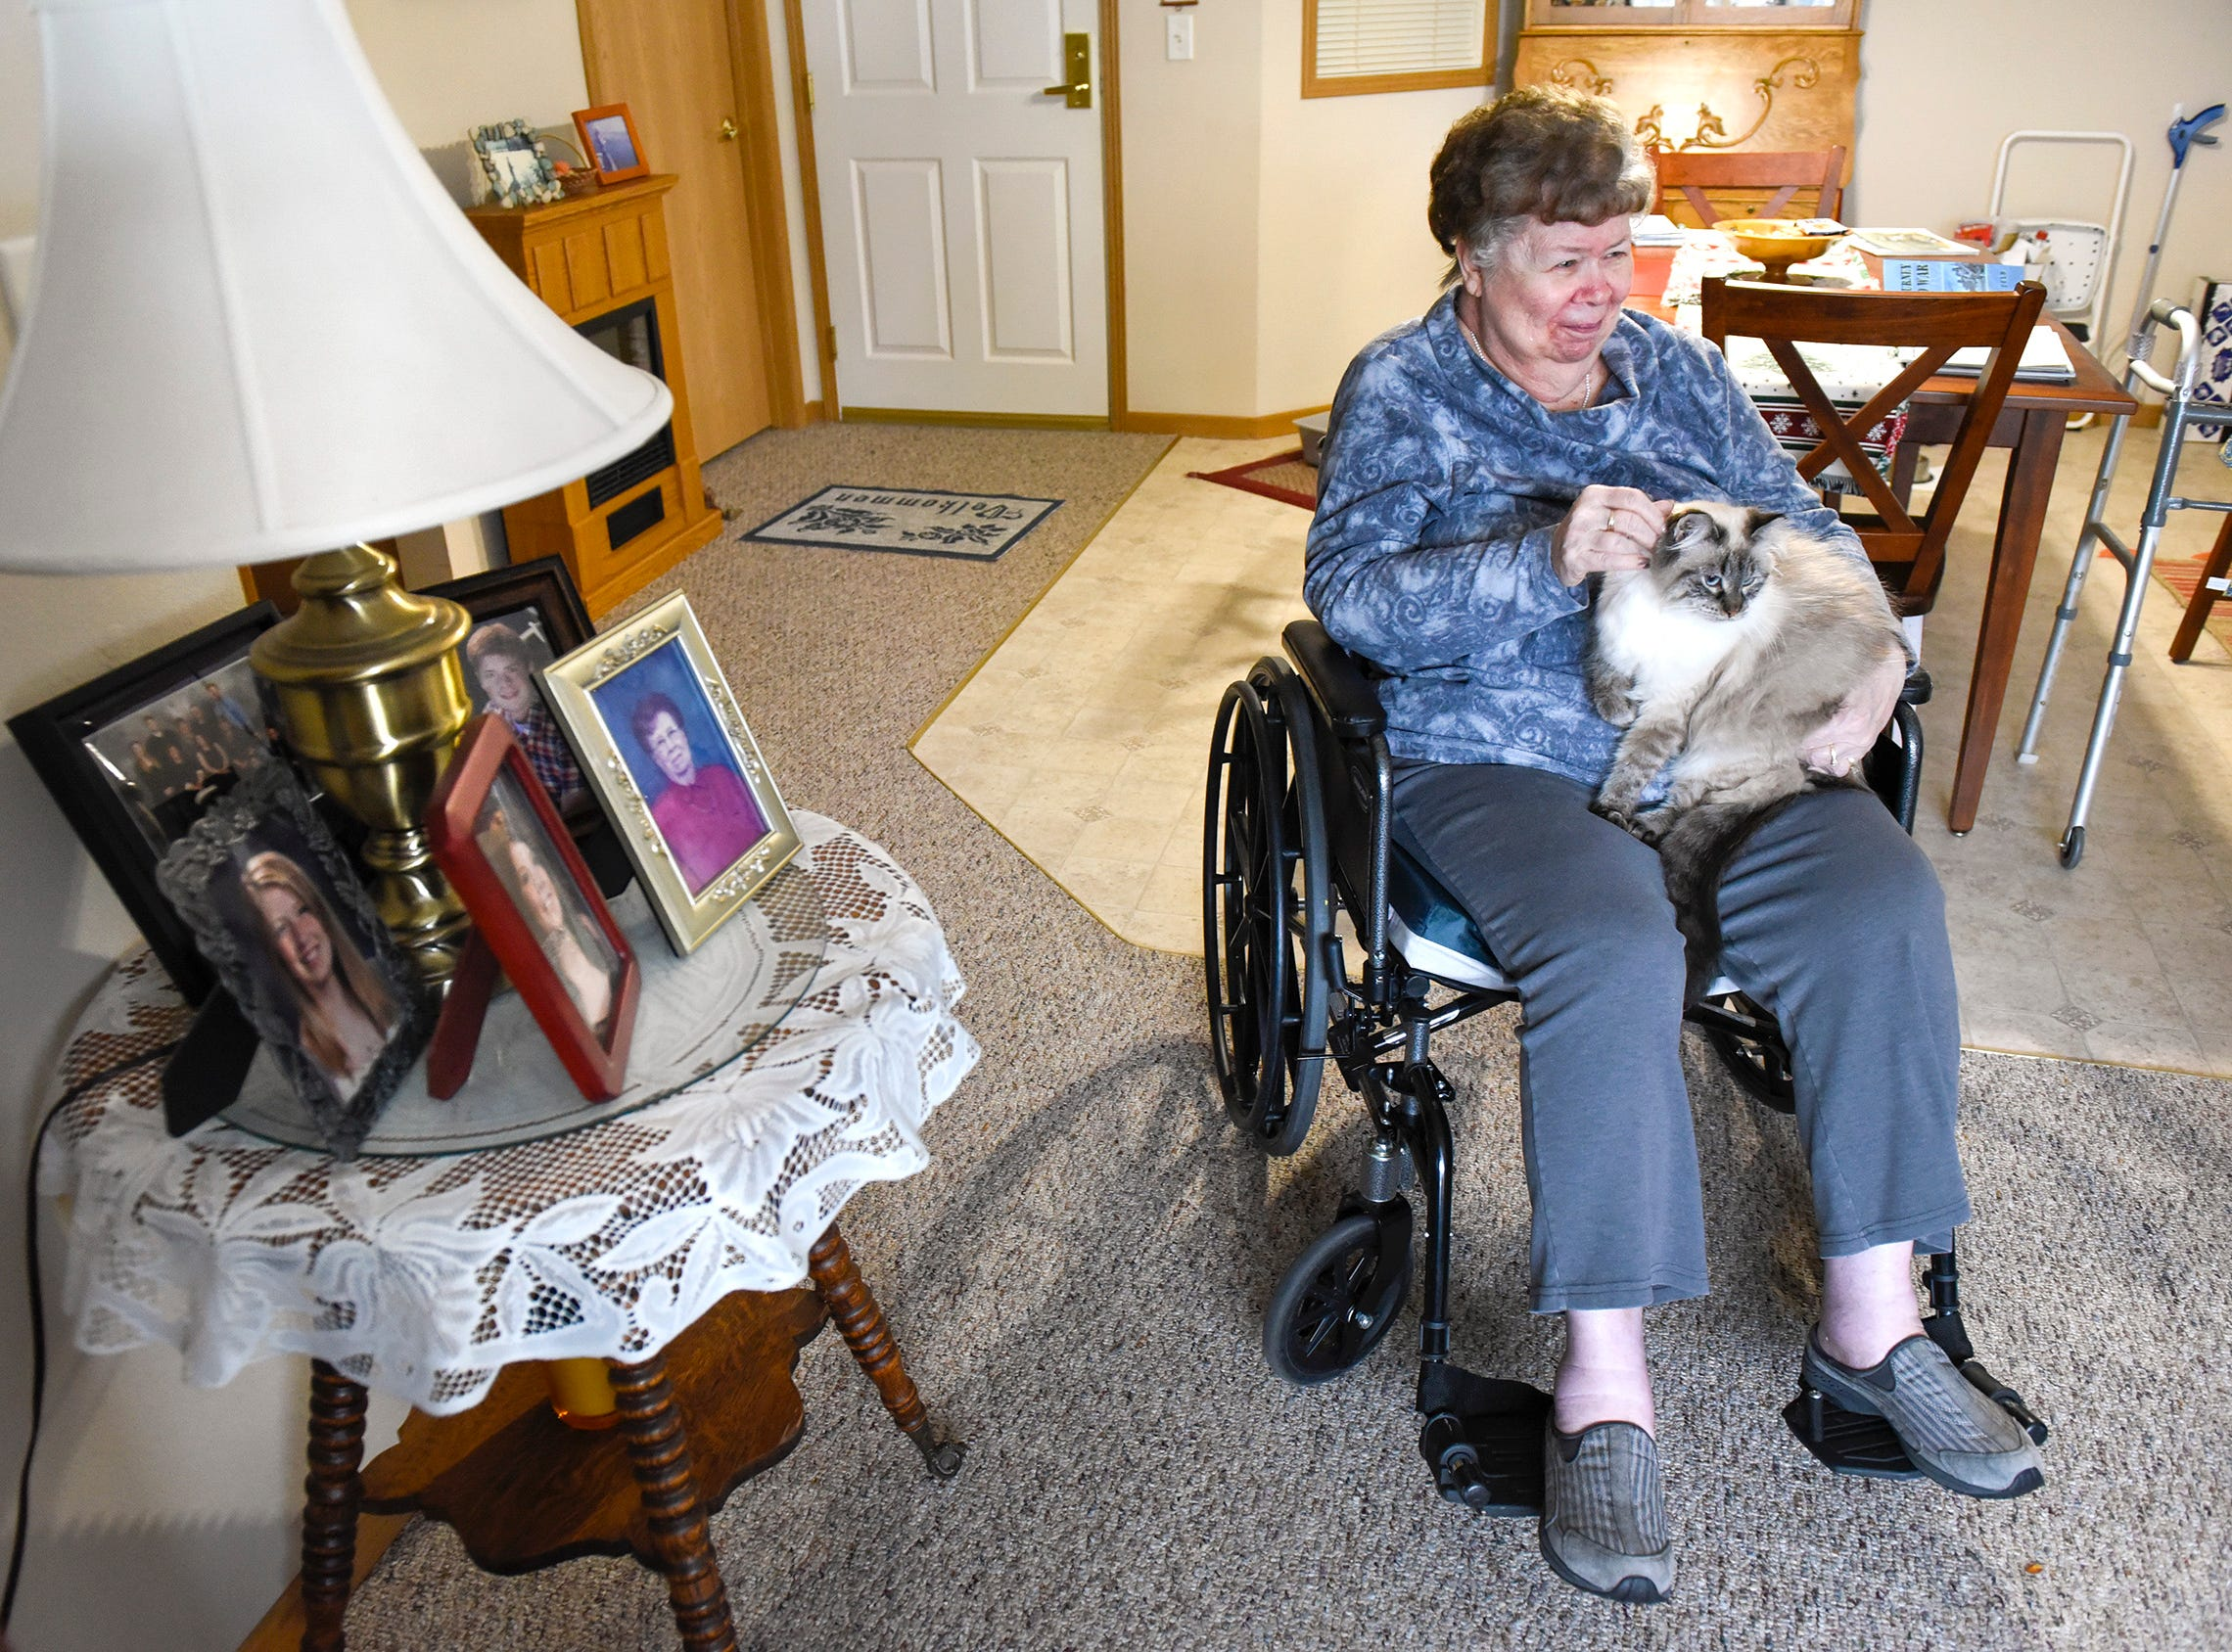 Barb Nelson holds her cat, Lena, Wednesday, Dec. 5, at Ridgeview Place Senior Living in Sauk Rapids.